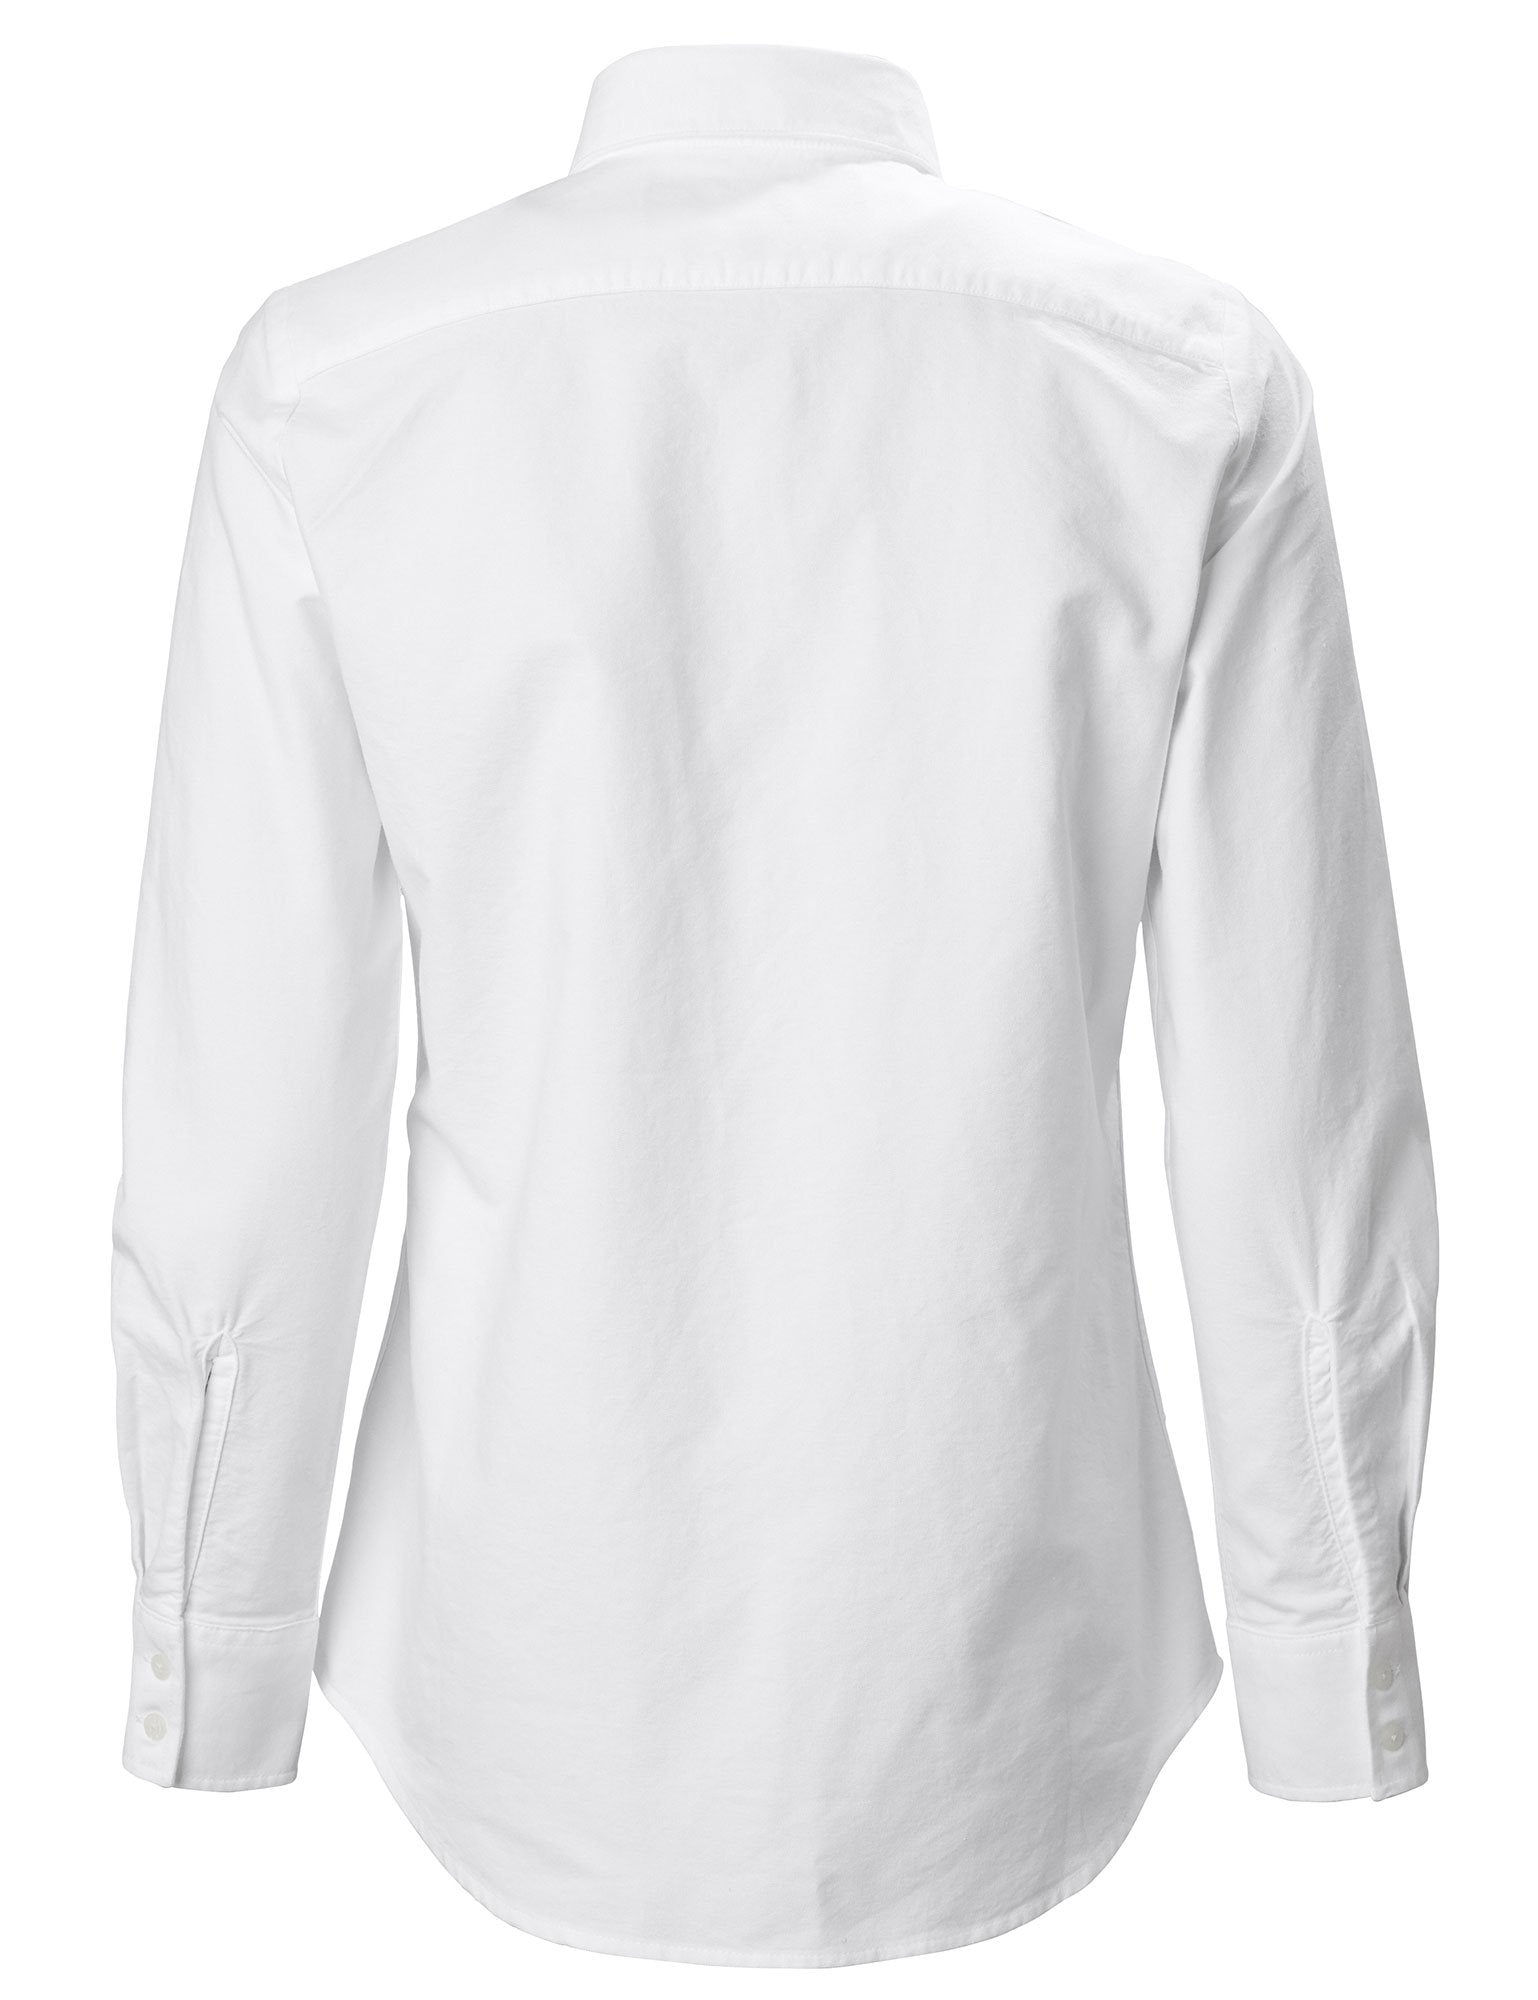 Back View Ladies Oxford Cotton Shirt by Musto